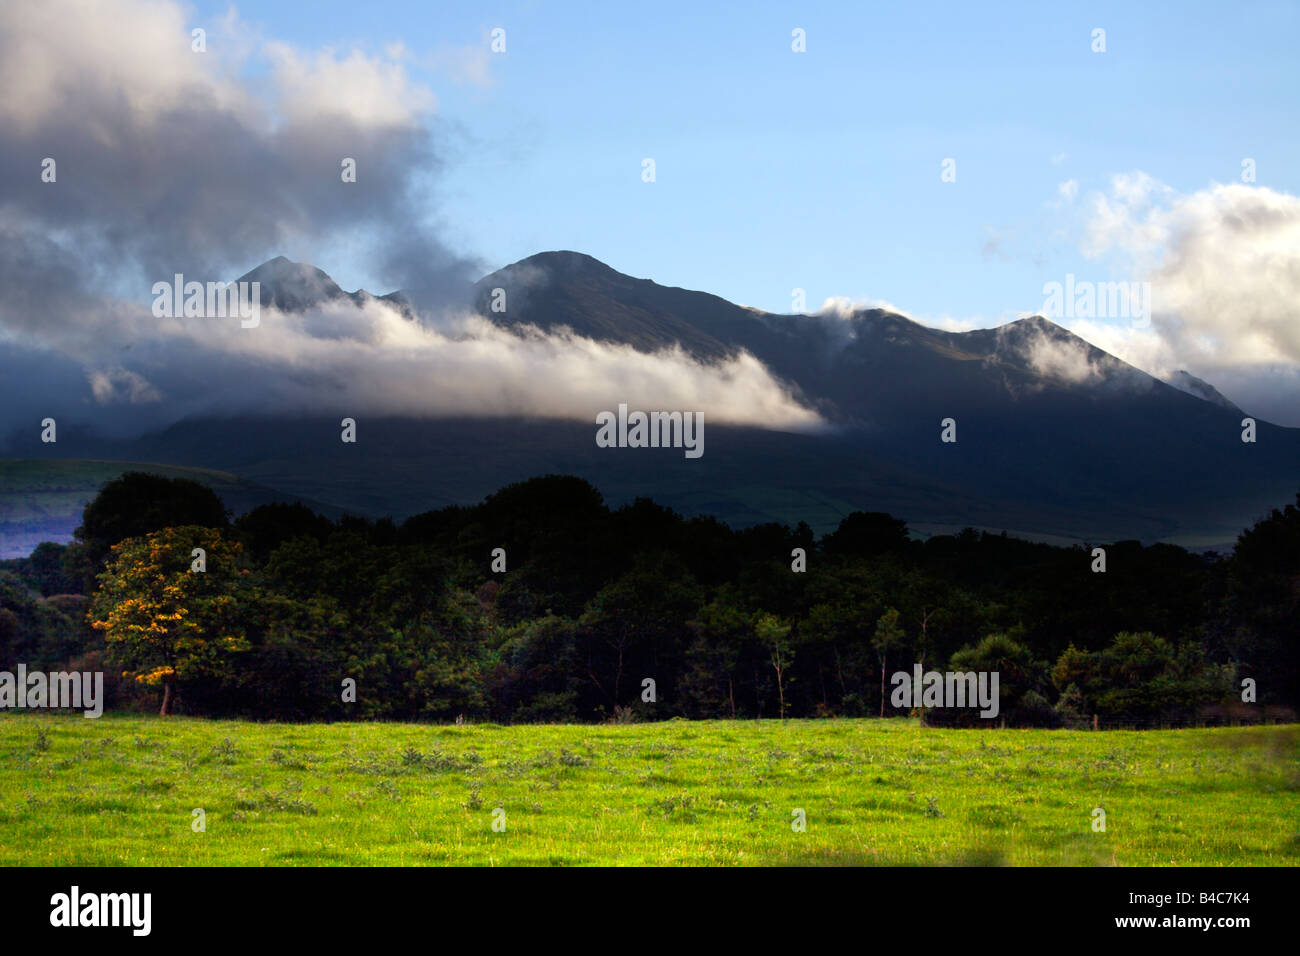 Low cloud cover over the majestic MacGillycuddy's Reeks, Killarney National Park, County Kerry, Munster, Ireland - Stock Image